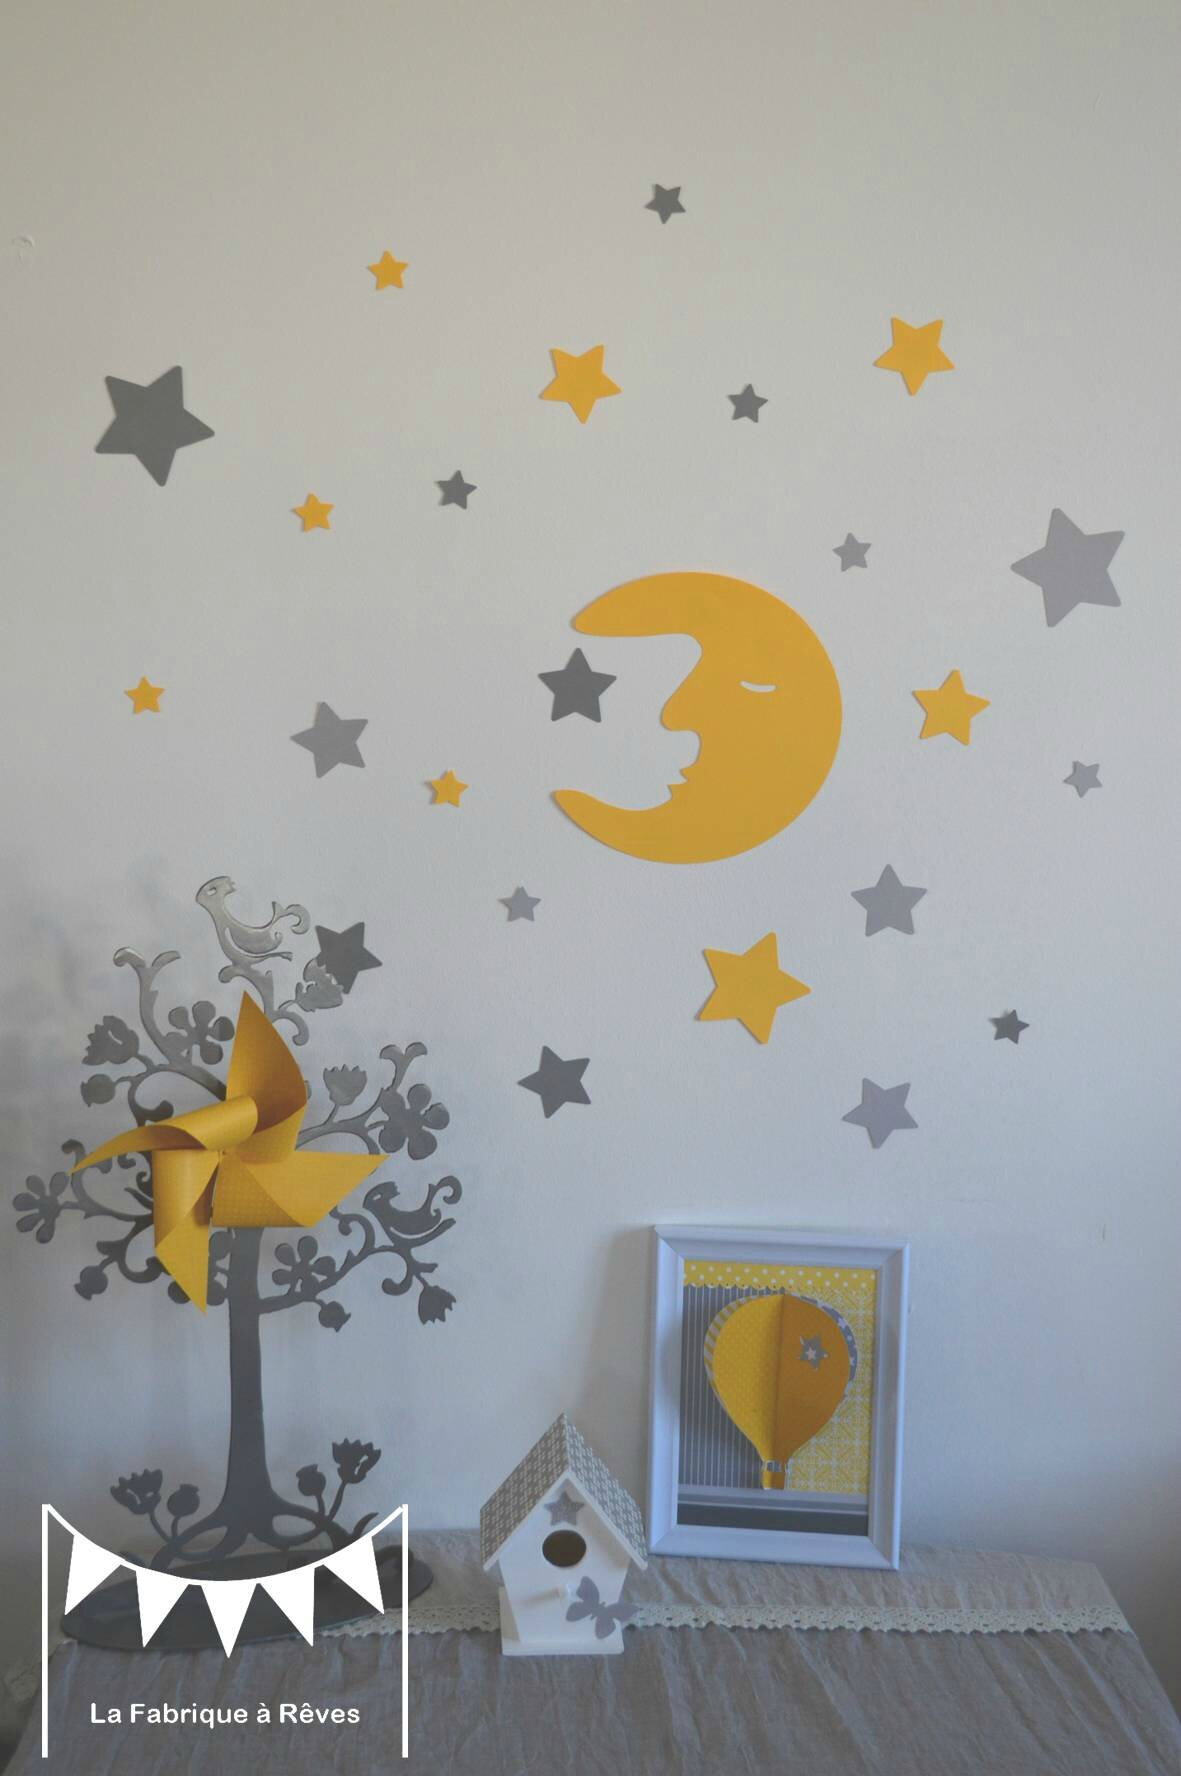 stickers d coration chambre enfant fille b b gar on lune et toiles jaune gris photo de 18. Black Bedroom Furniture Sets. Home Design Ideas